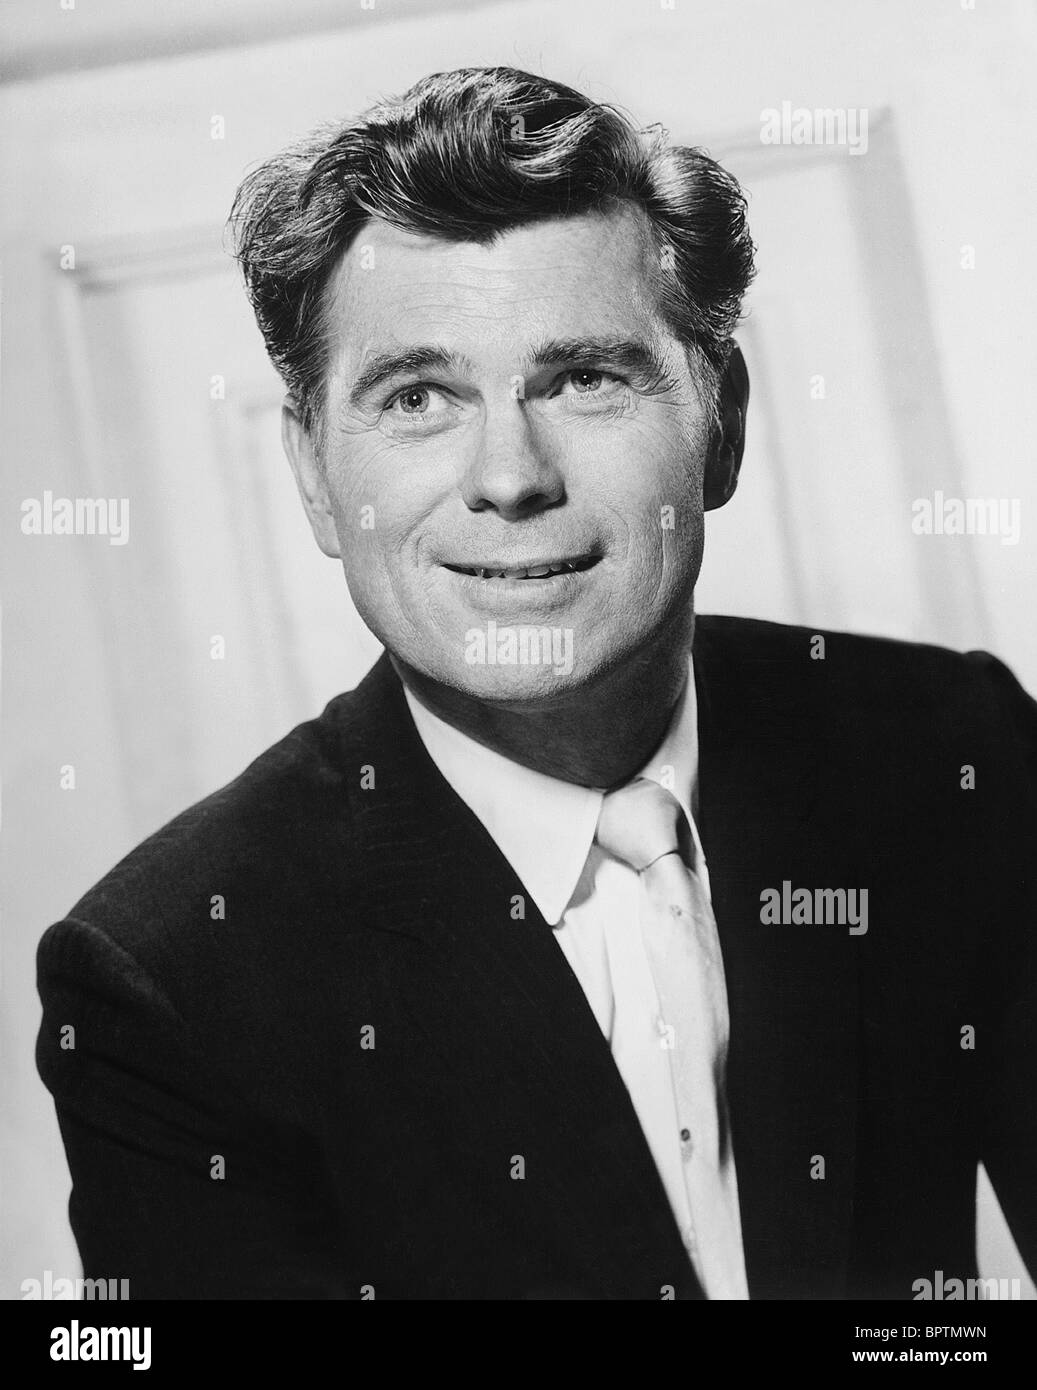 BARRY NELSON ACTOR (1963) - Stock Image